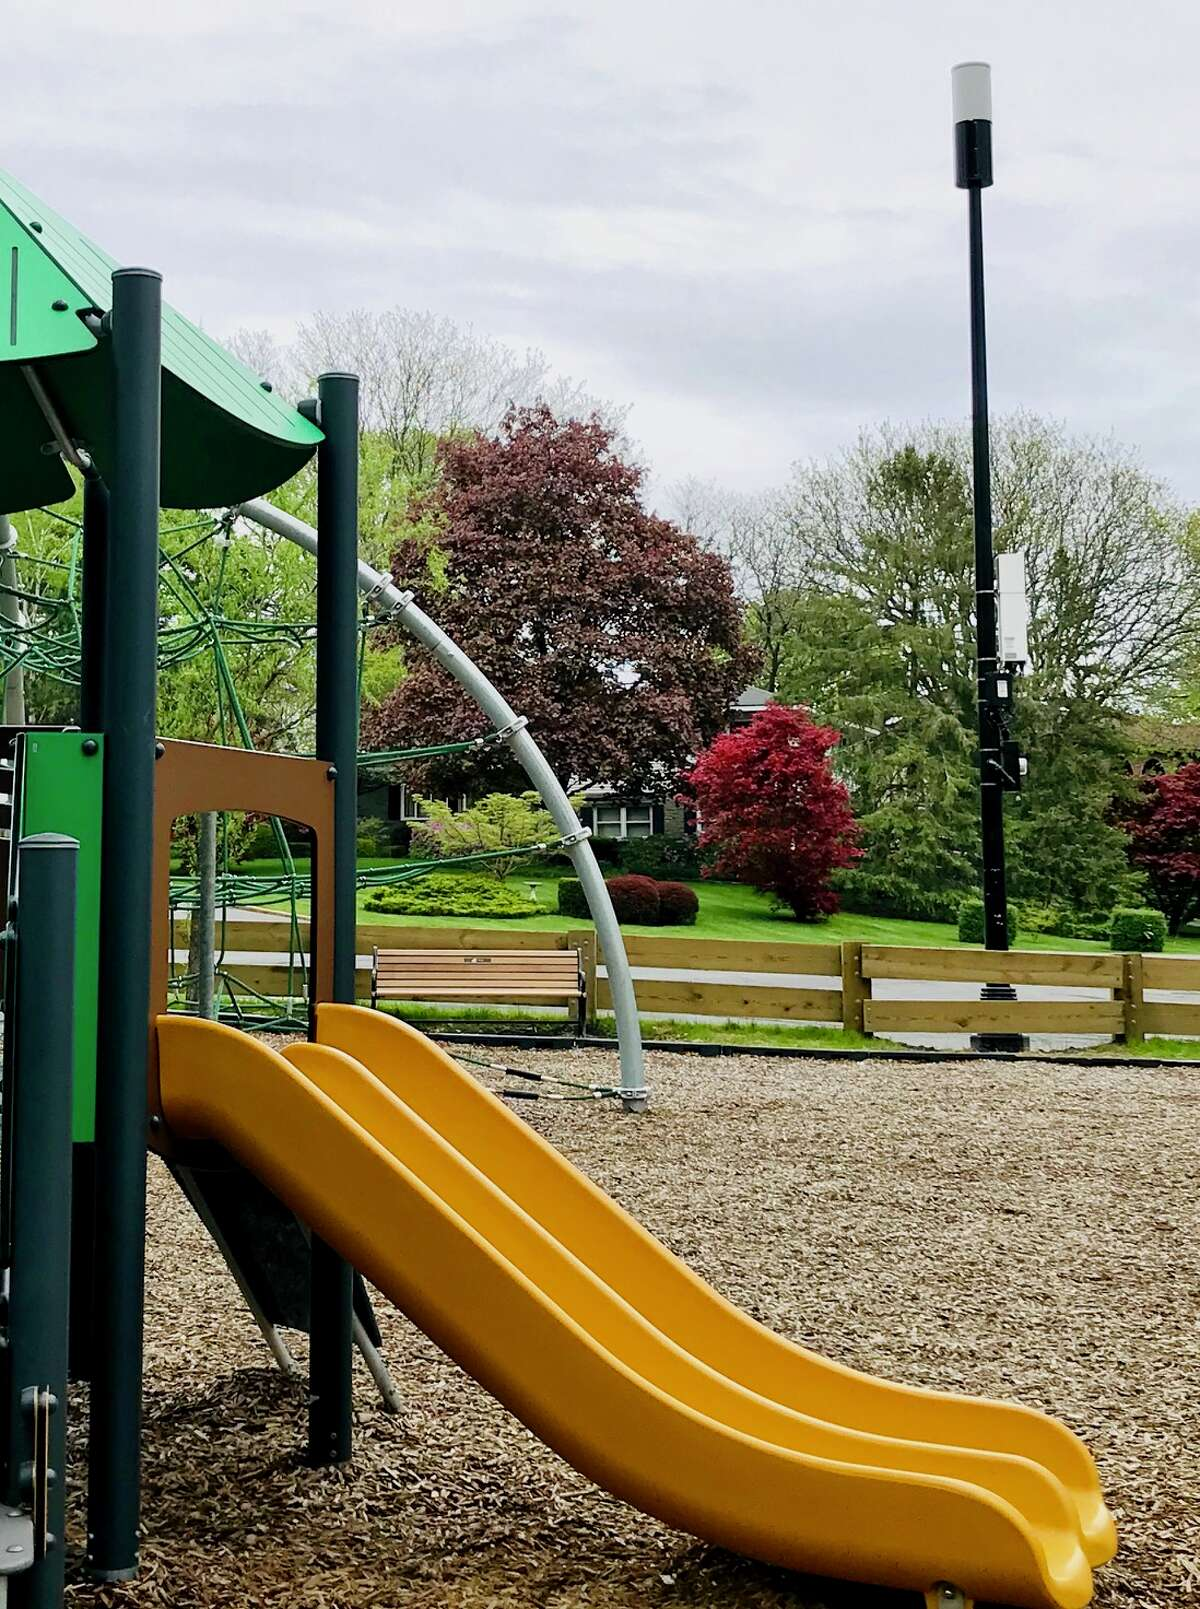 A cell tower was recently installed next to a city playground at Buckingham Lake, angering residents concerned the radio waves could harm children (Paul Grondahl / Times Union)